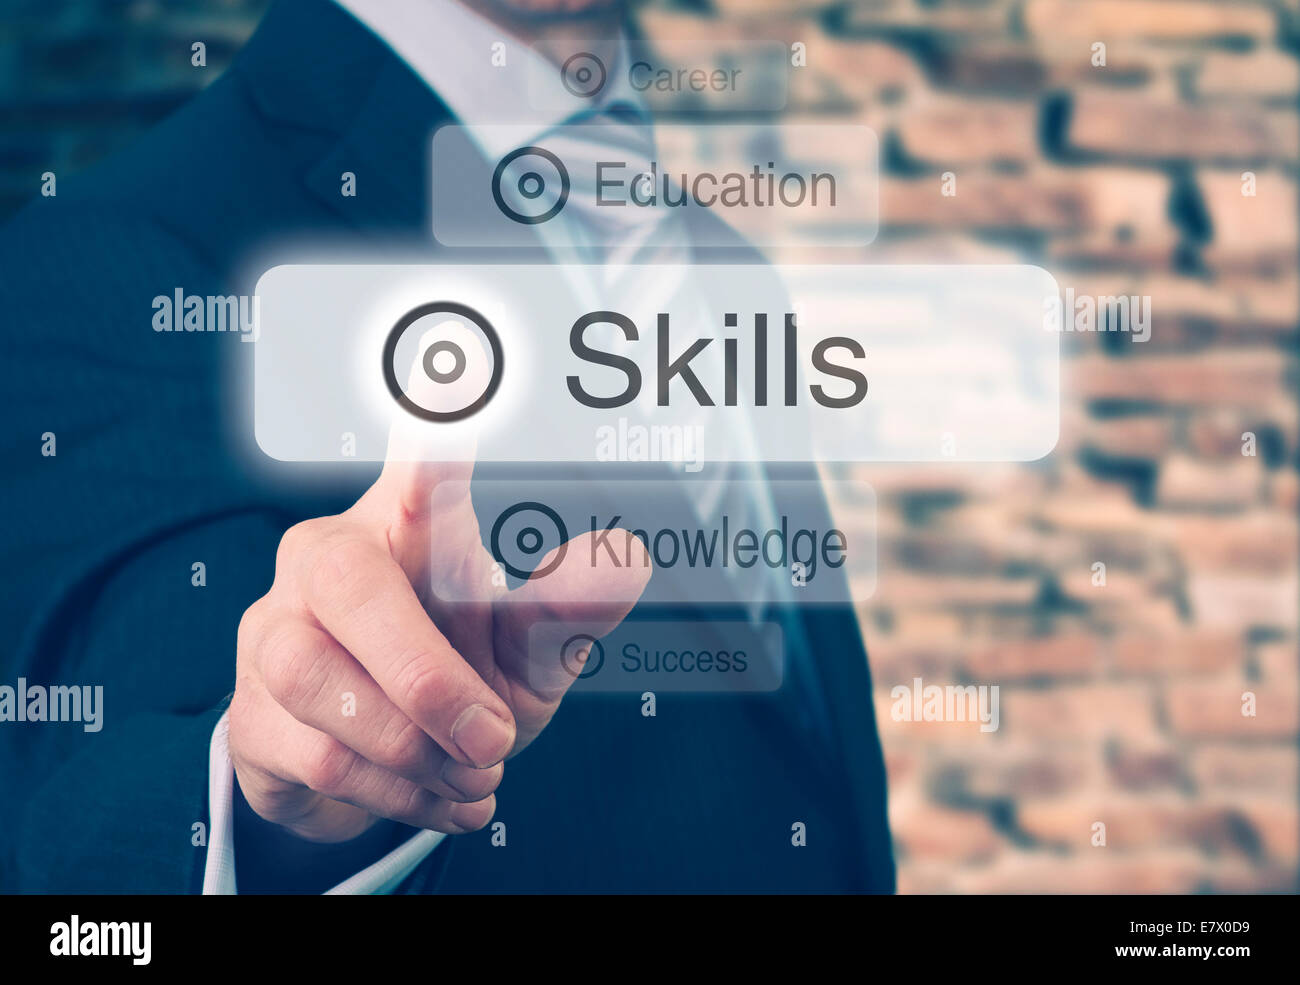 Businessman pressing a Skills concept button. Instagram Styling Applied. - Stock Image